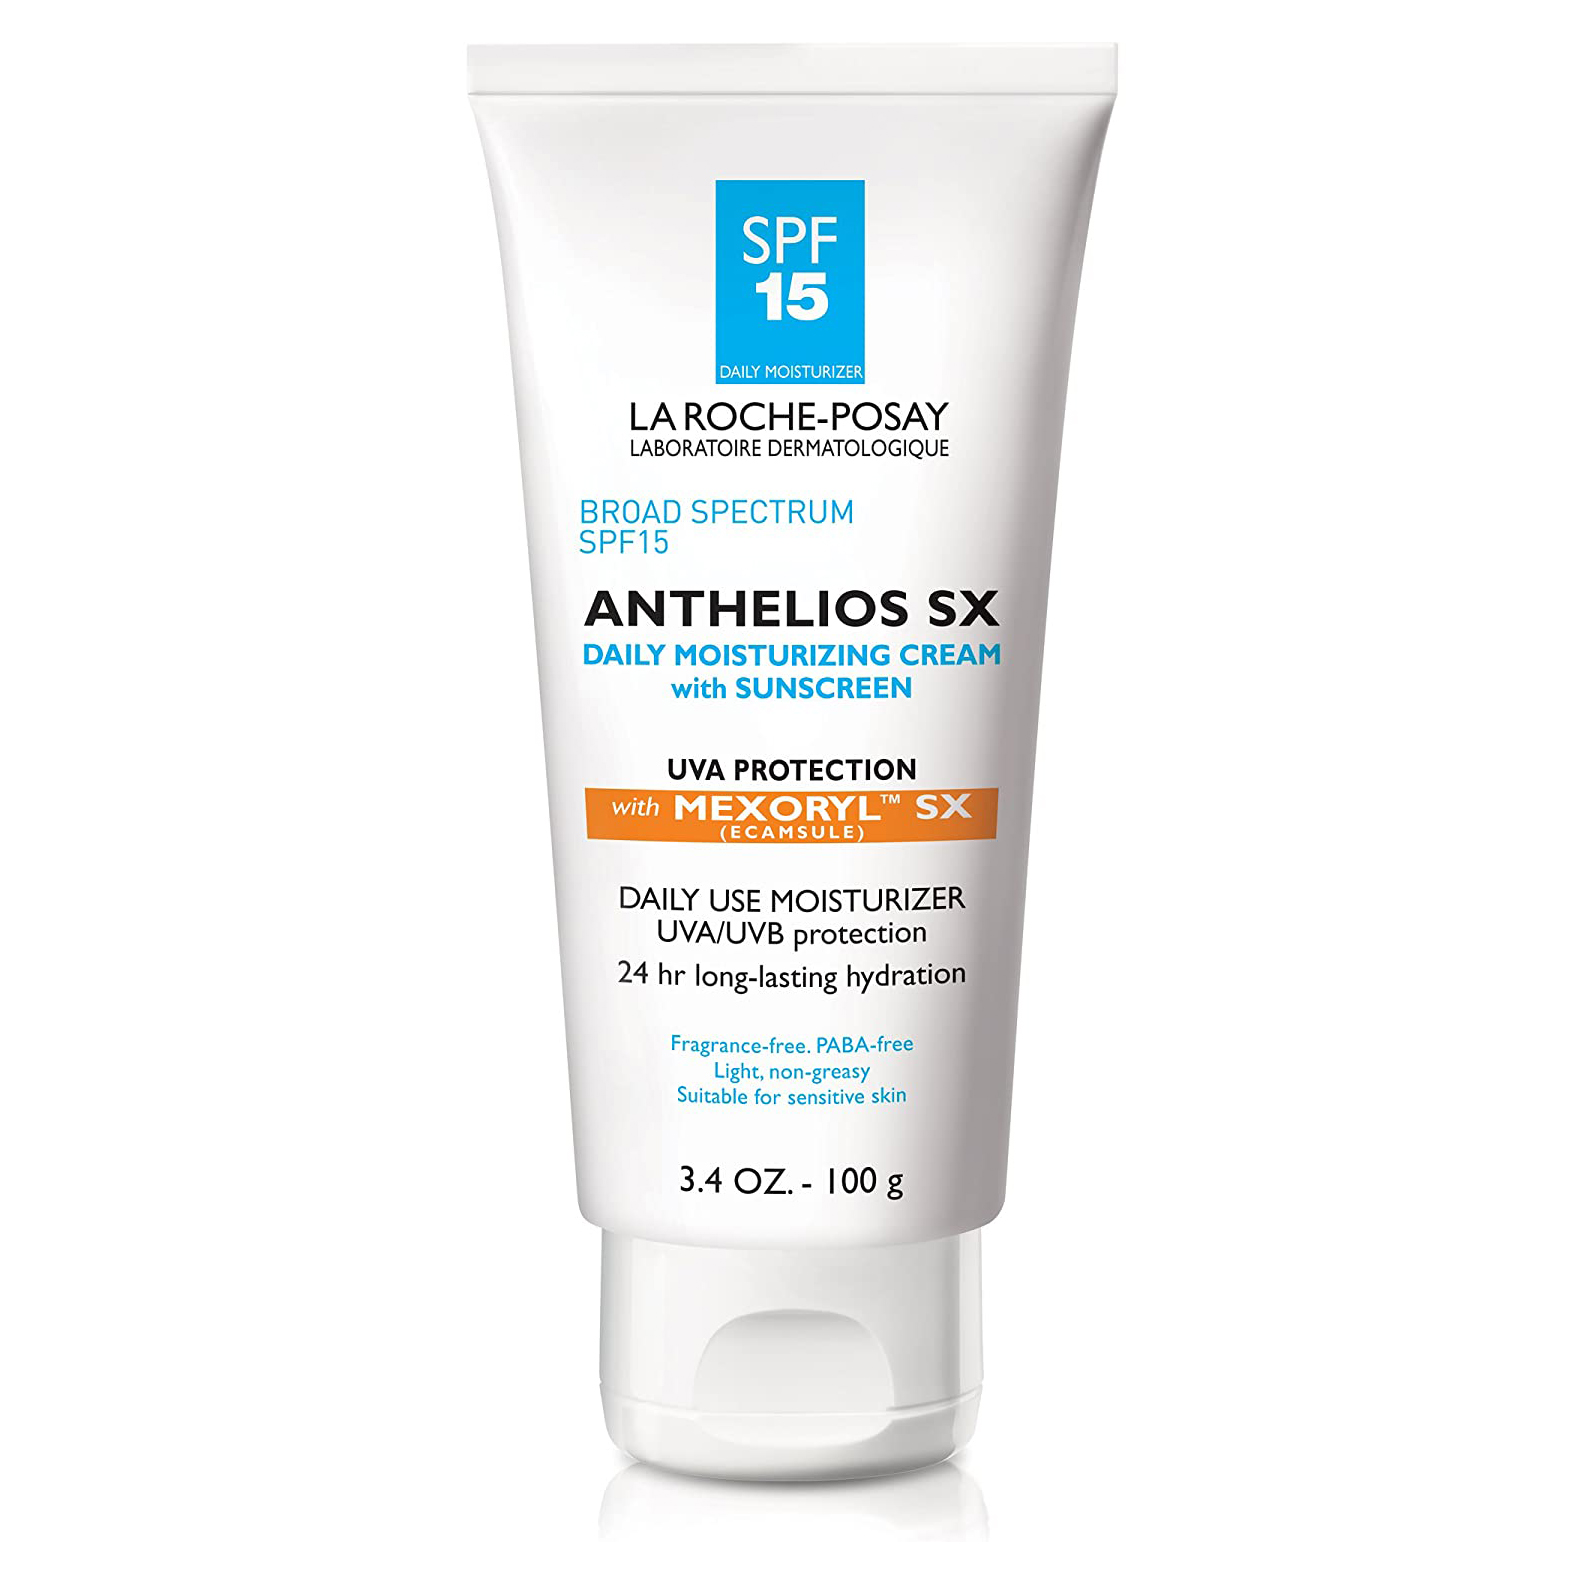 La Roche-Posay Anthelios SX Daily Face Moisturizing Cream with Sunscreen